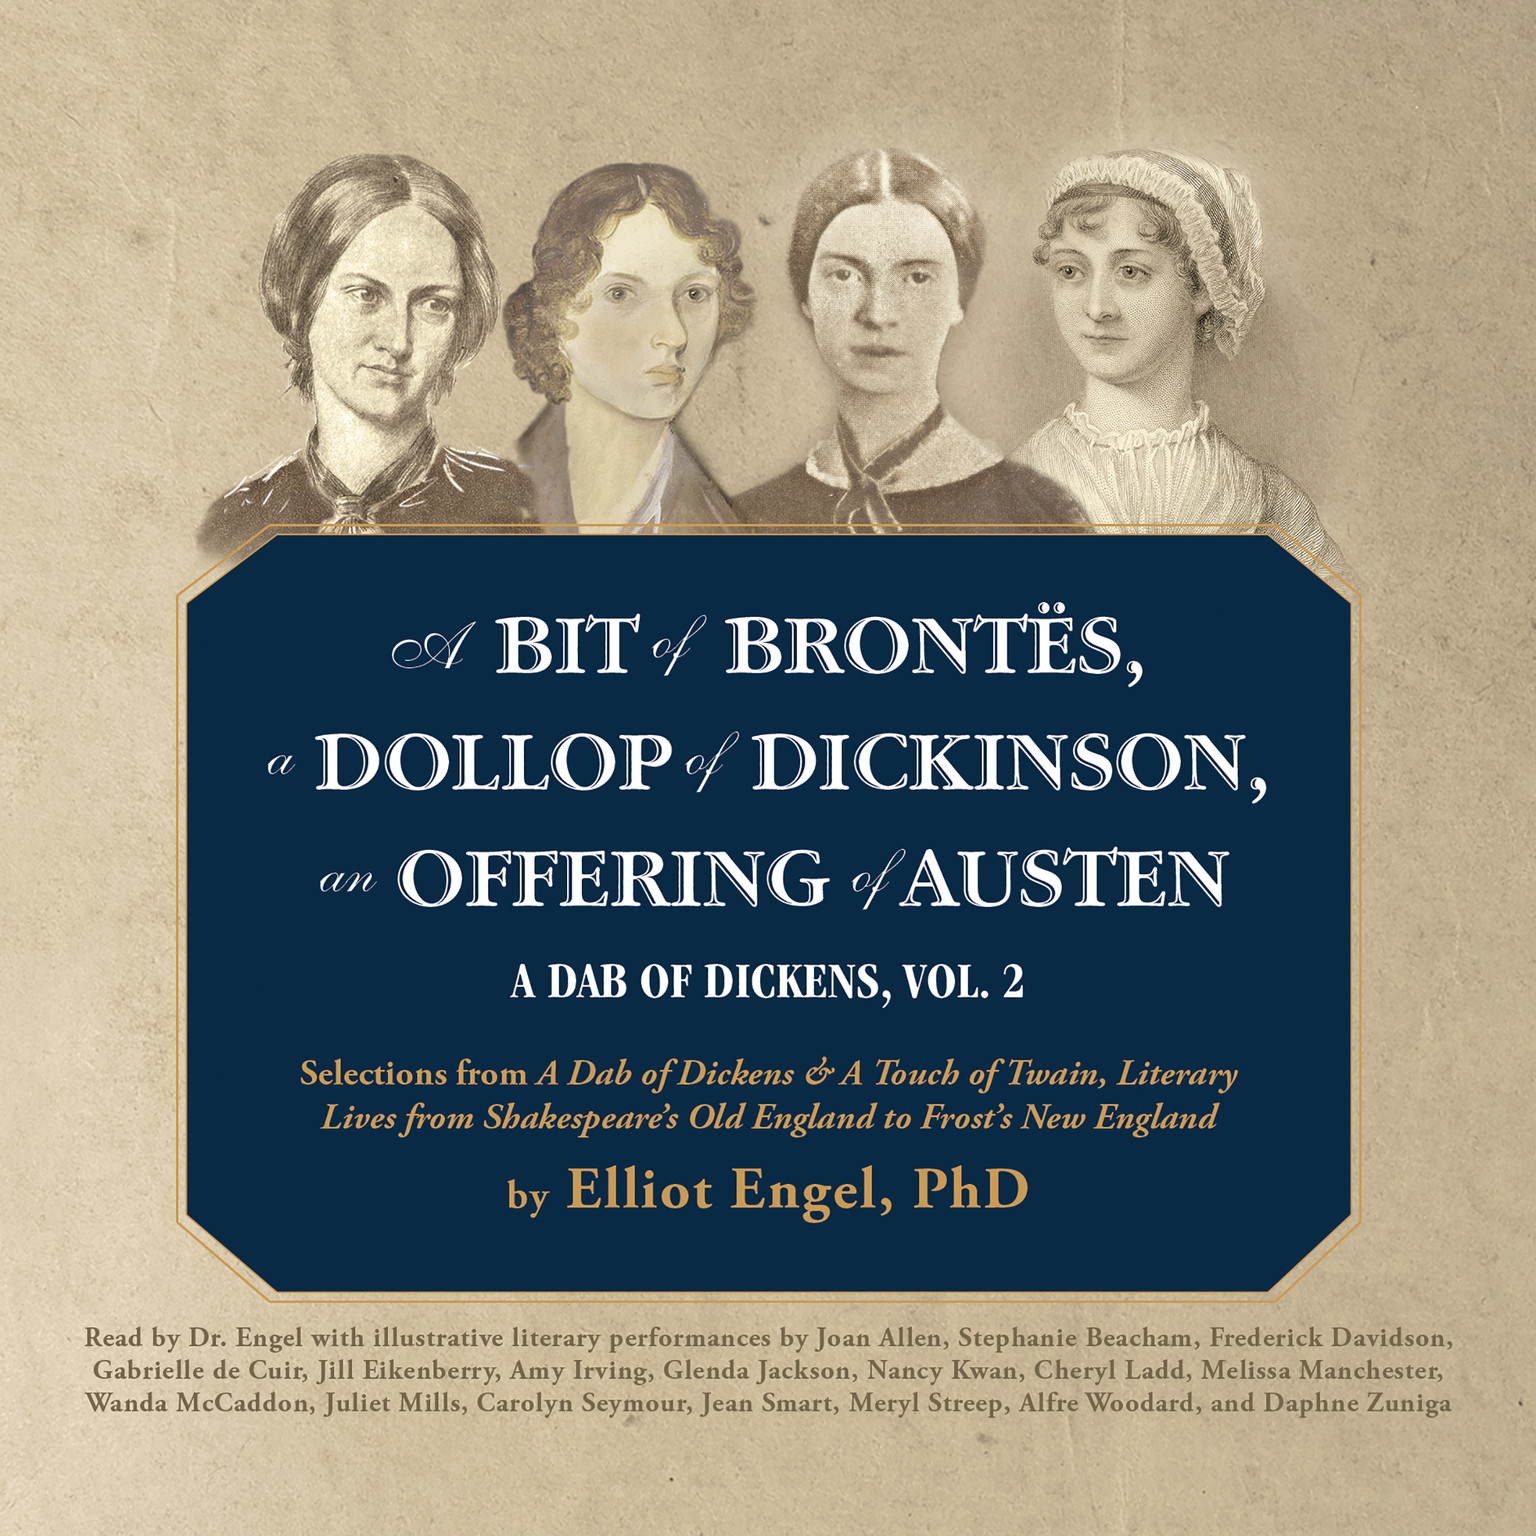 Printable A Bit of Brontës, a Dollop of Dickinson, an Offering  of Austen: A Dab of Dickens, Vol. 2; Selections from A Dab of Dickens & a Touch of Twain, Literary Lives from Shakespeare's Old England to Frost's New England Audiobook Cover Art